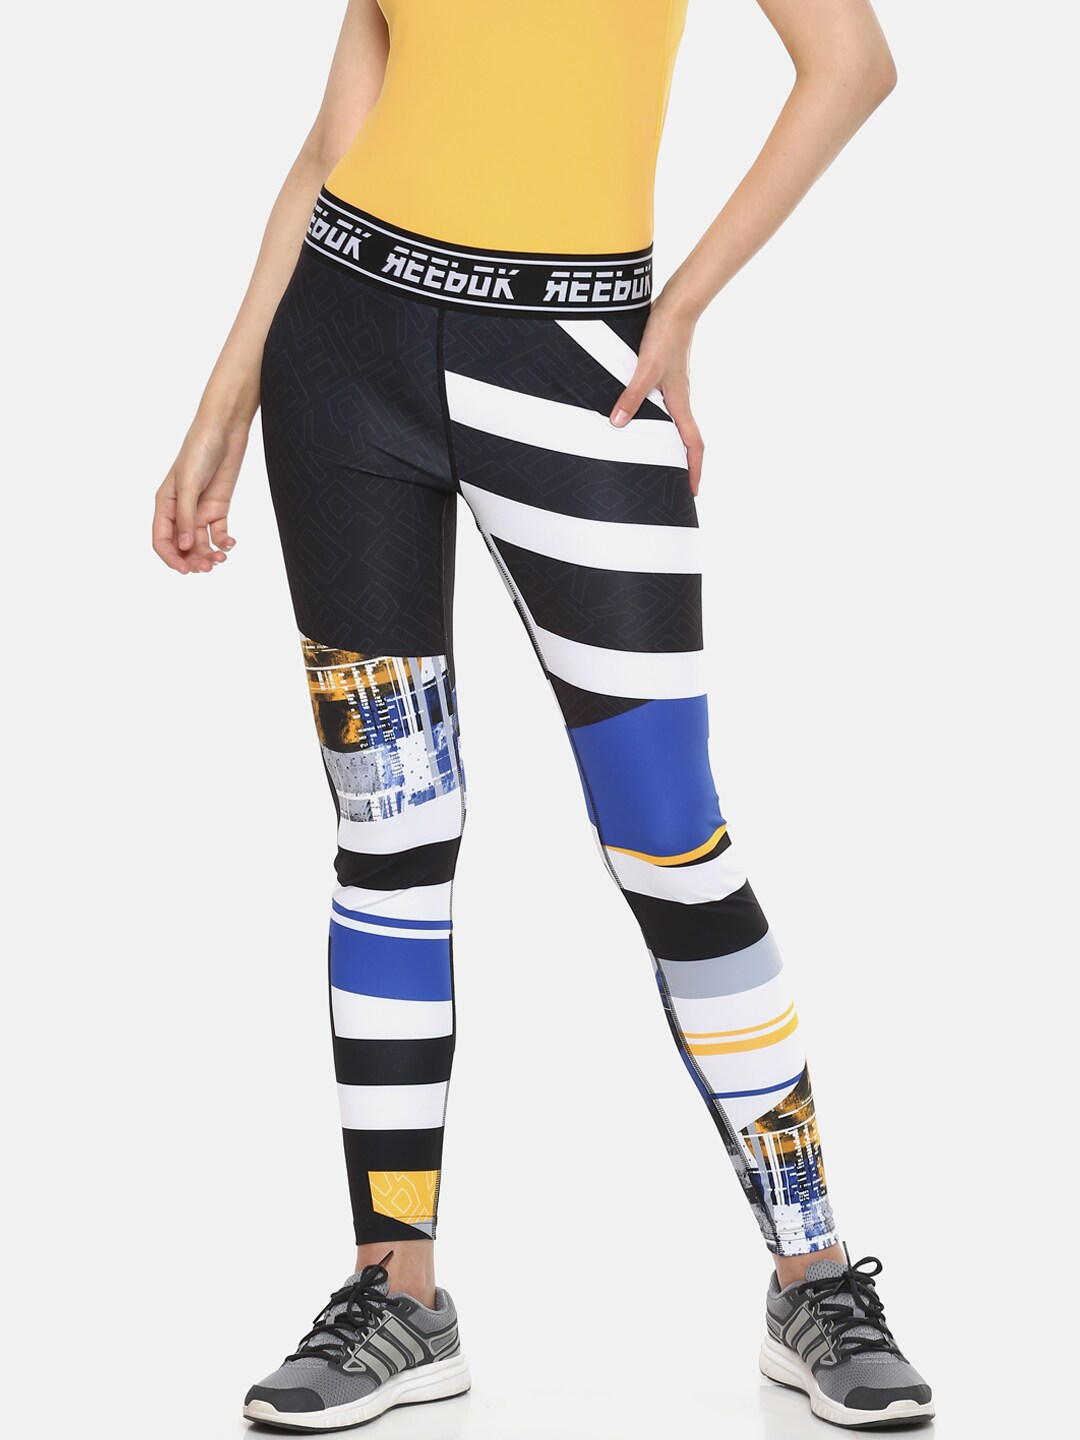 74ad993170 Reebok Women Black & White Striped Training Workout Meet You There  Engineered Tights